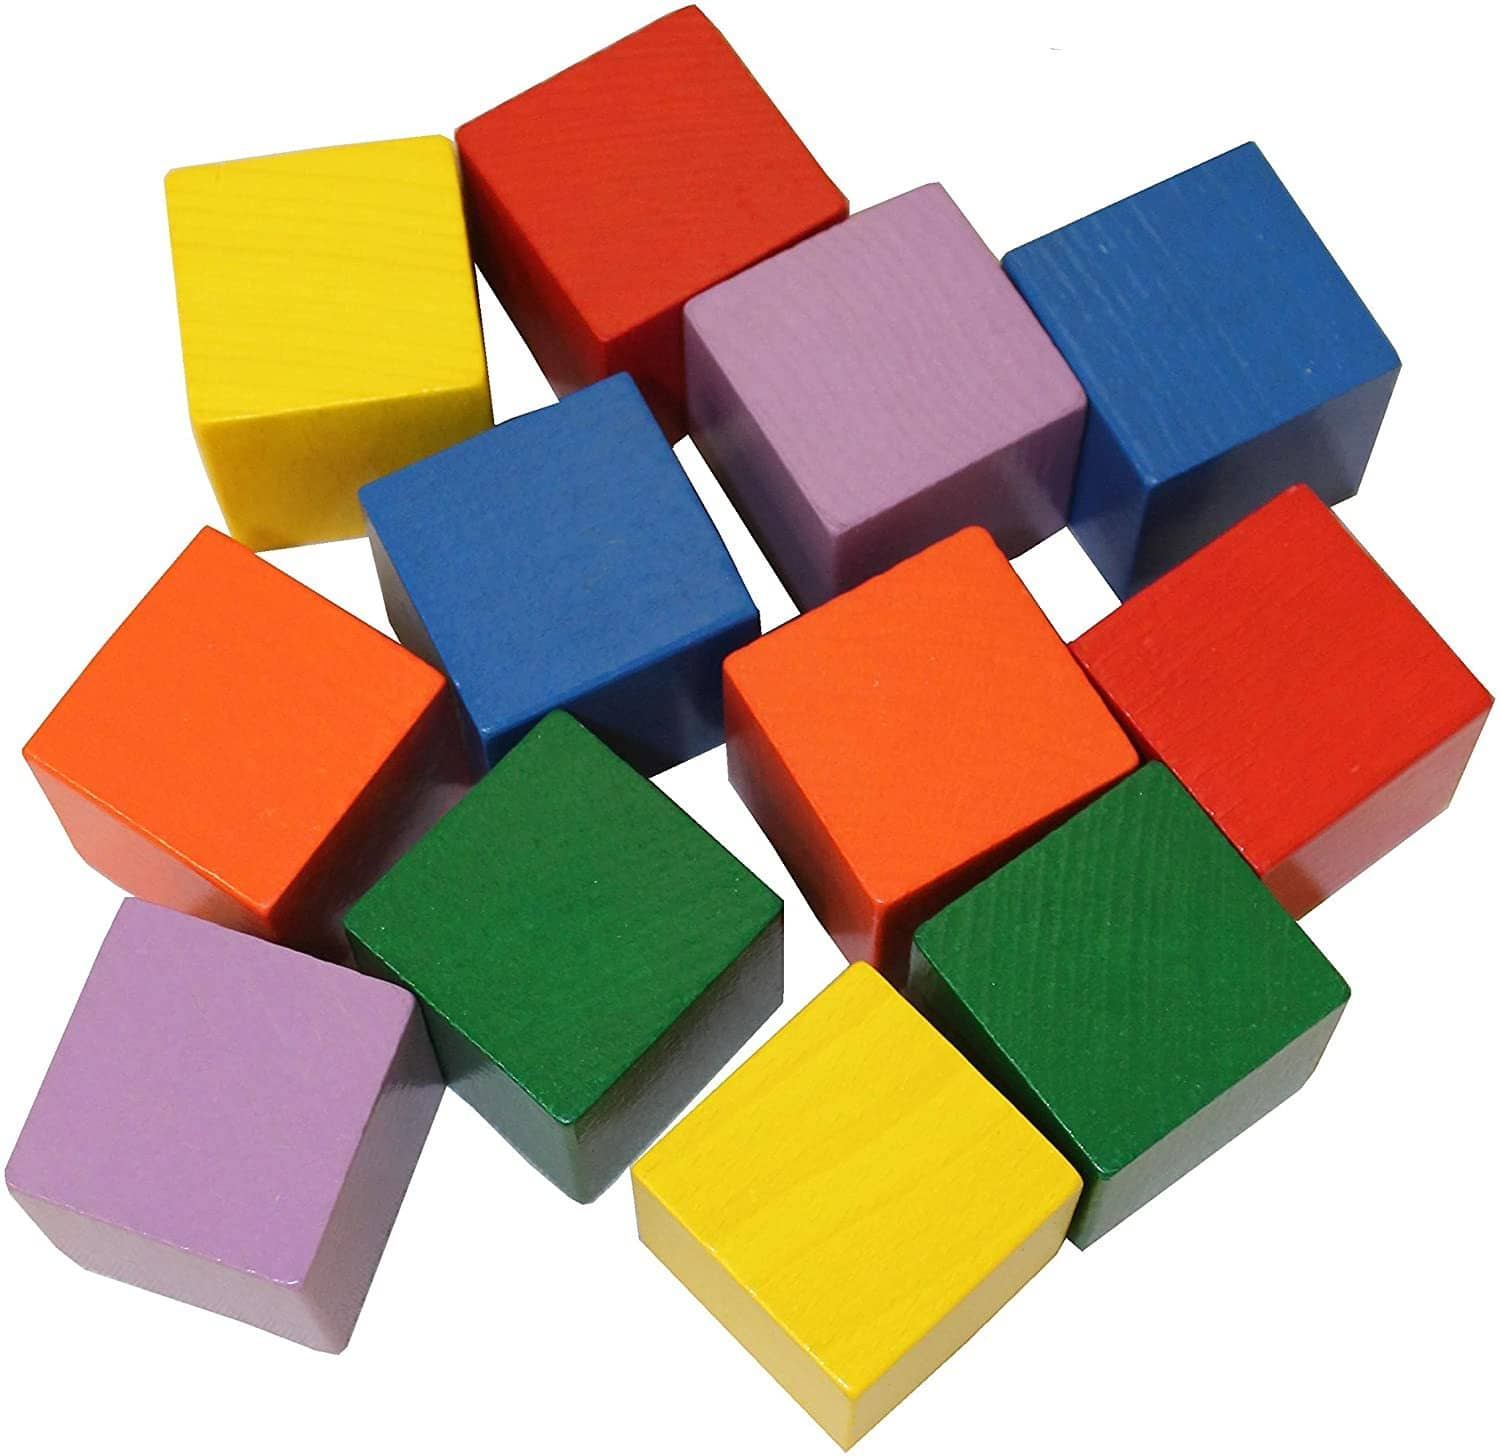 Babys First Basic Block Set - 12 Colorful Wooden Cubes (Made In Germany)-Kidding Around NYC